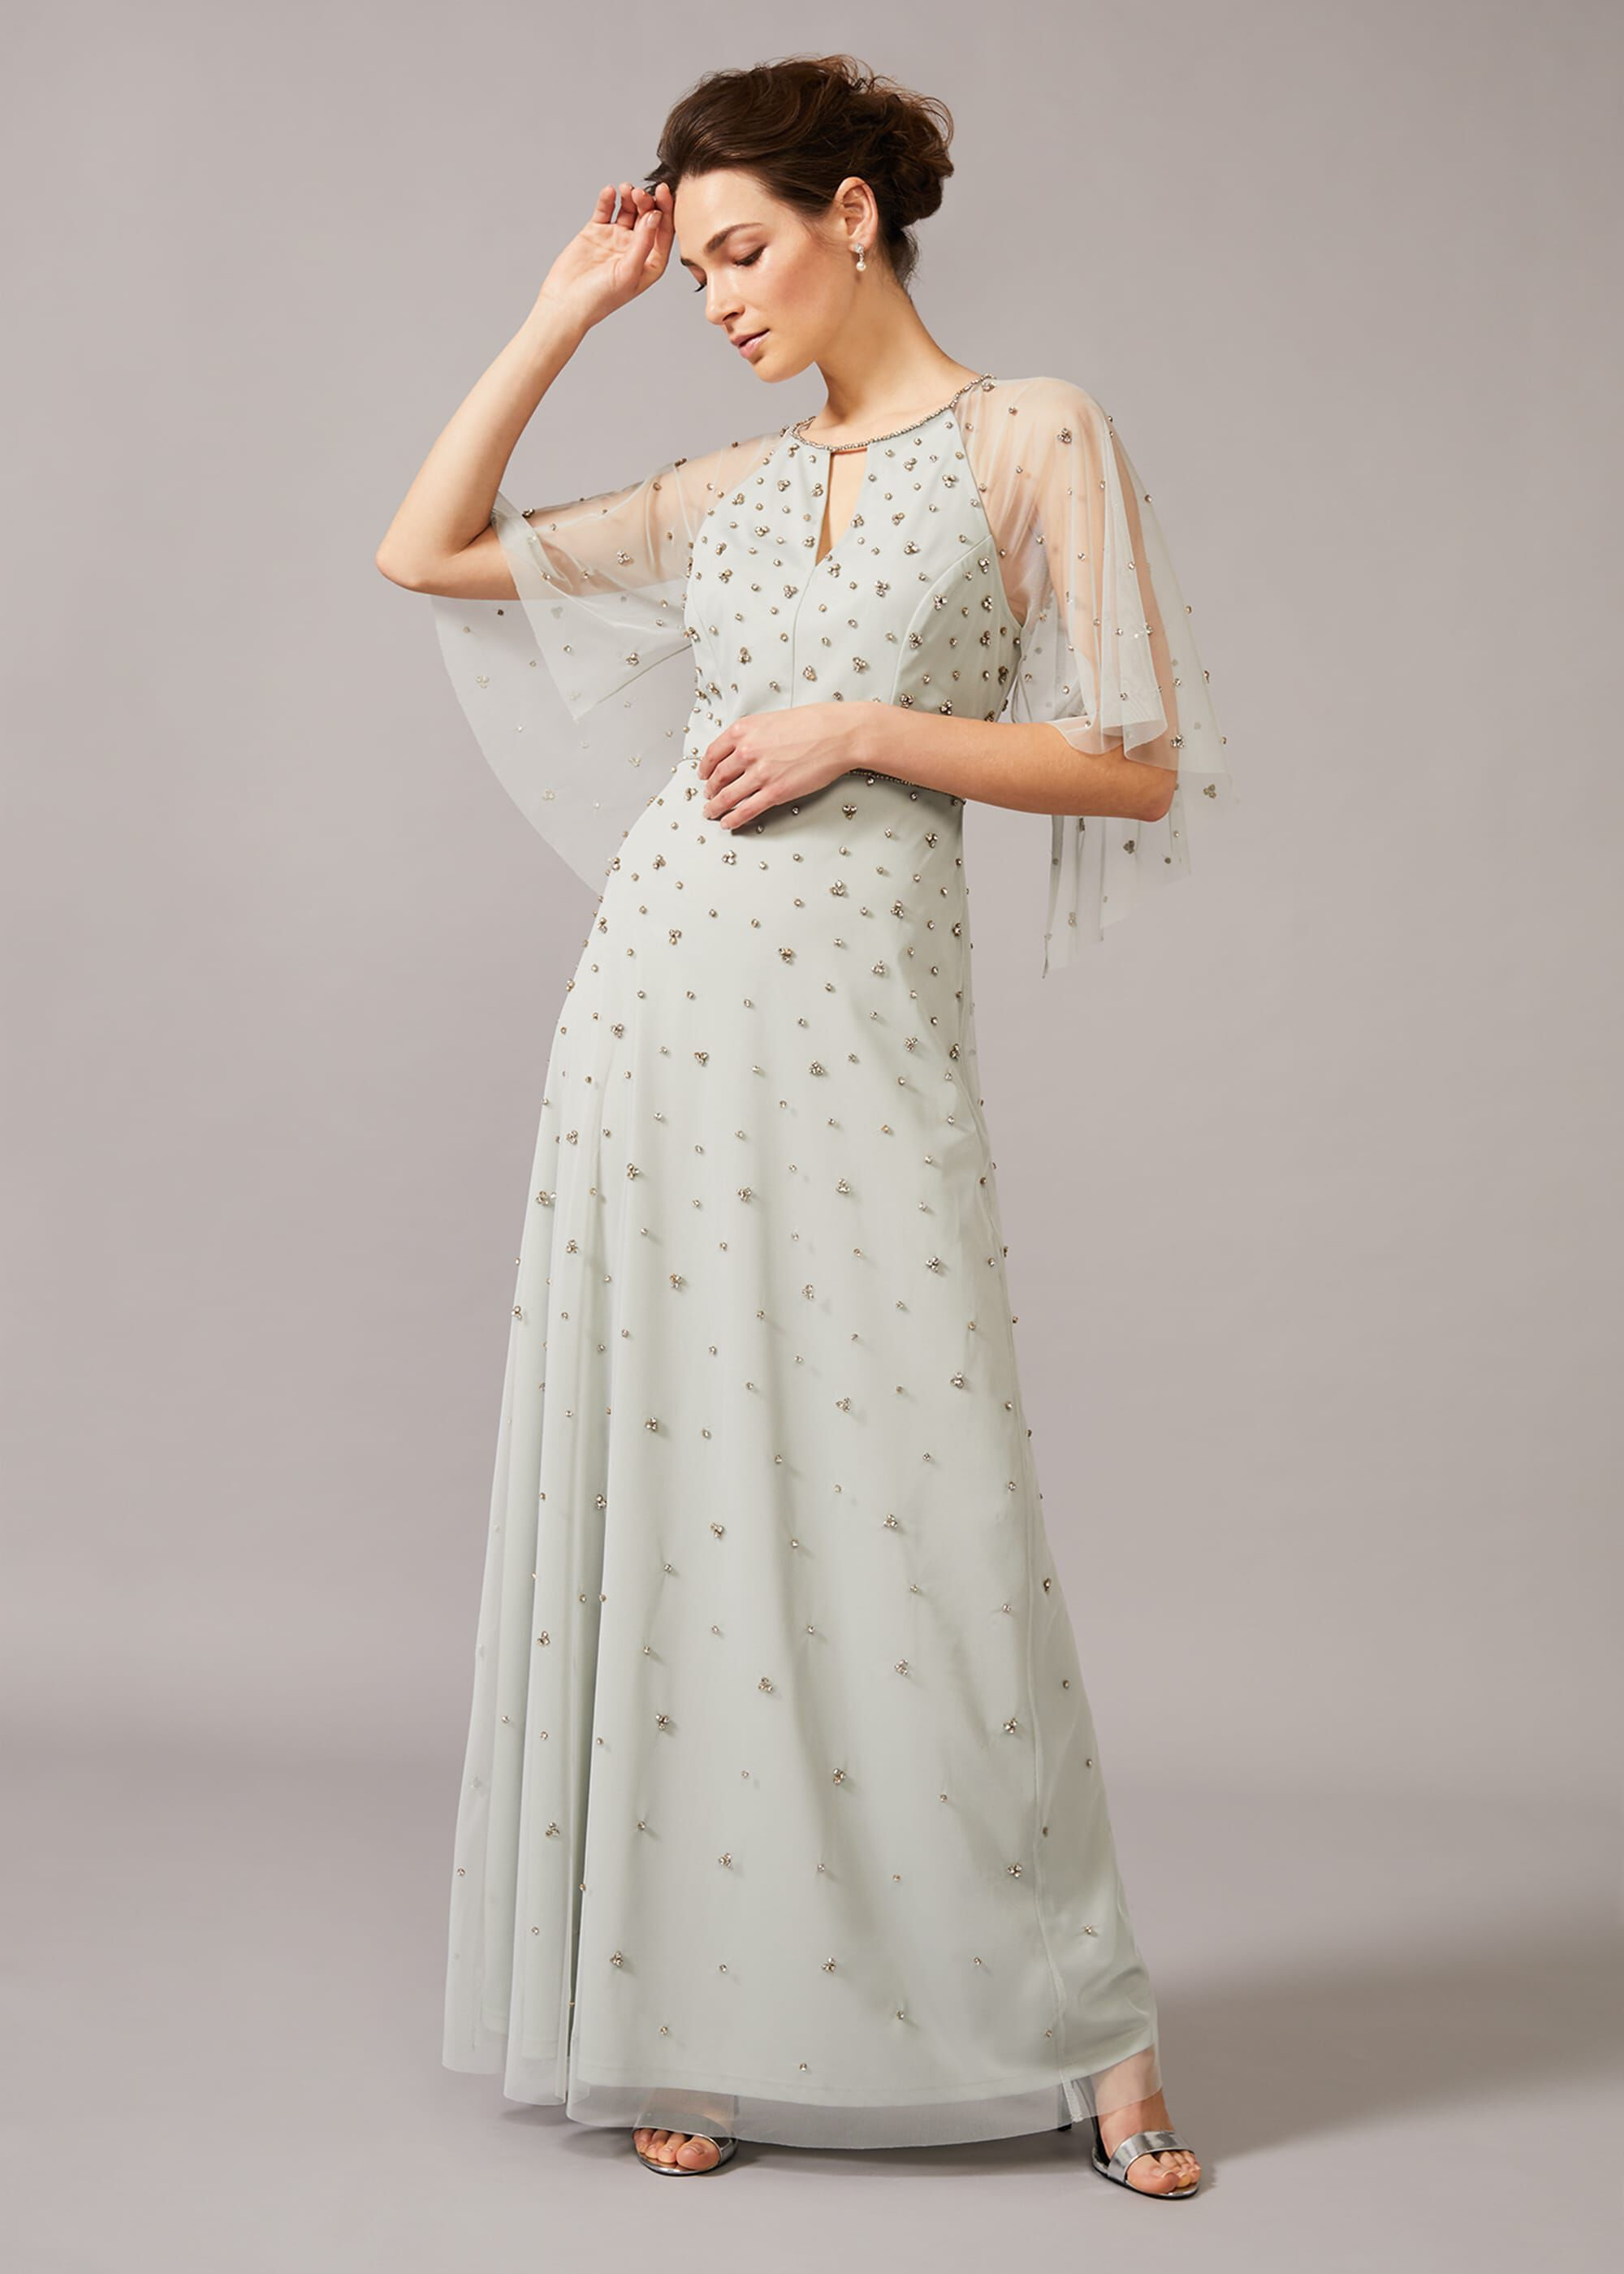 Phase Eight Blanca Sparkle Tulle Dress, Blue, Maxi, Occasion Dress